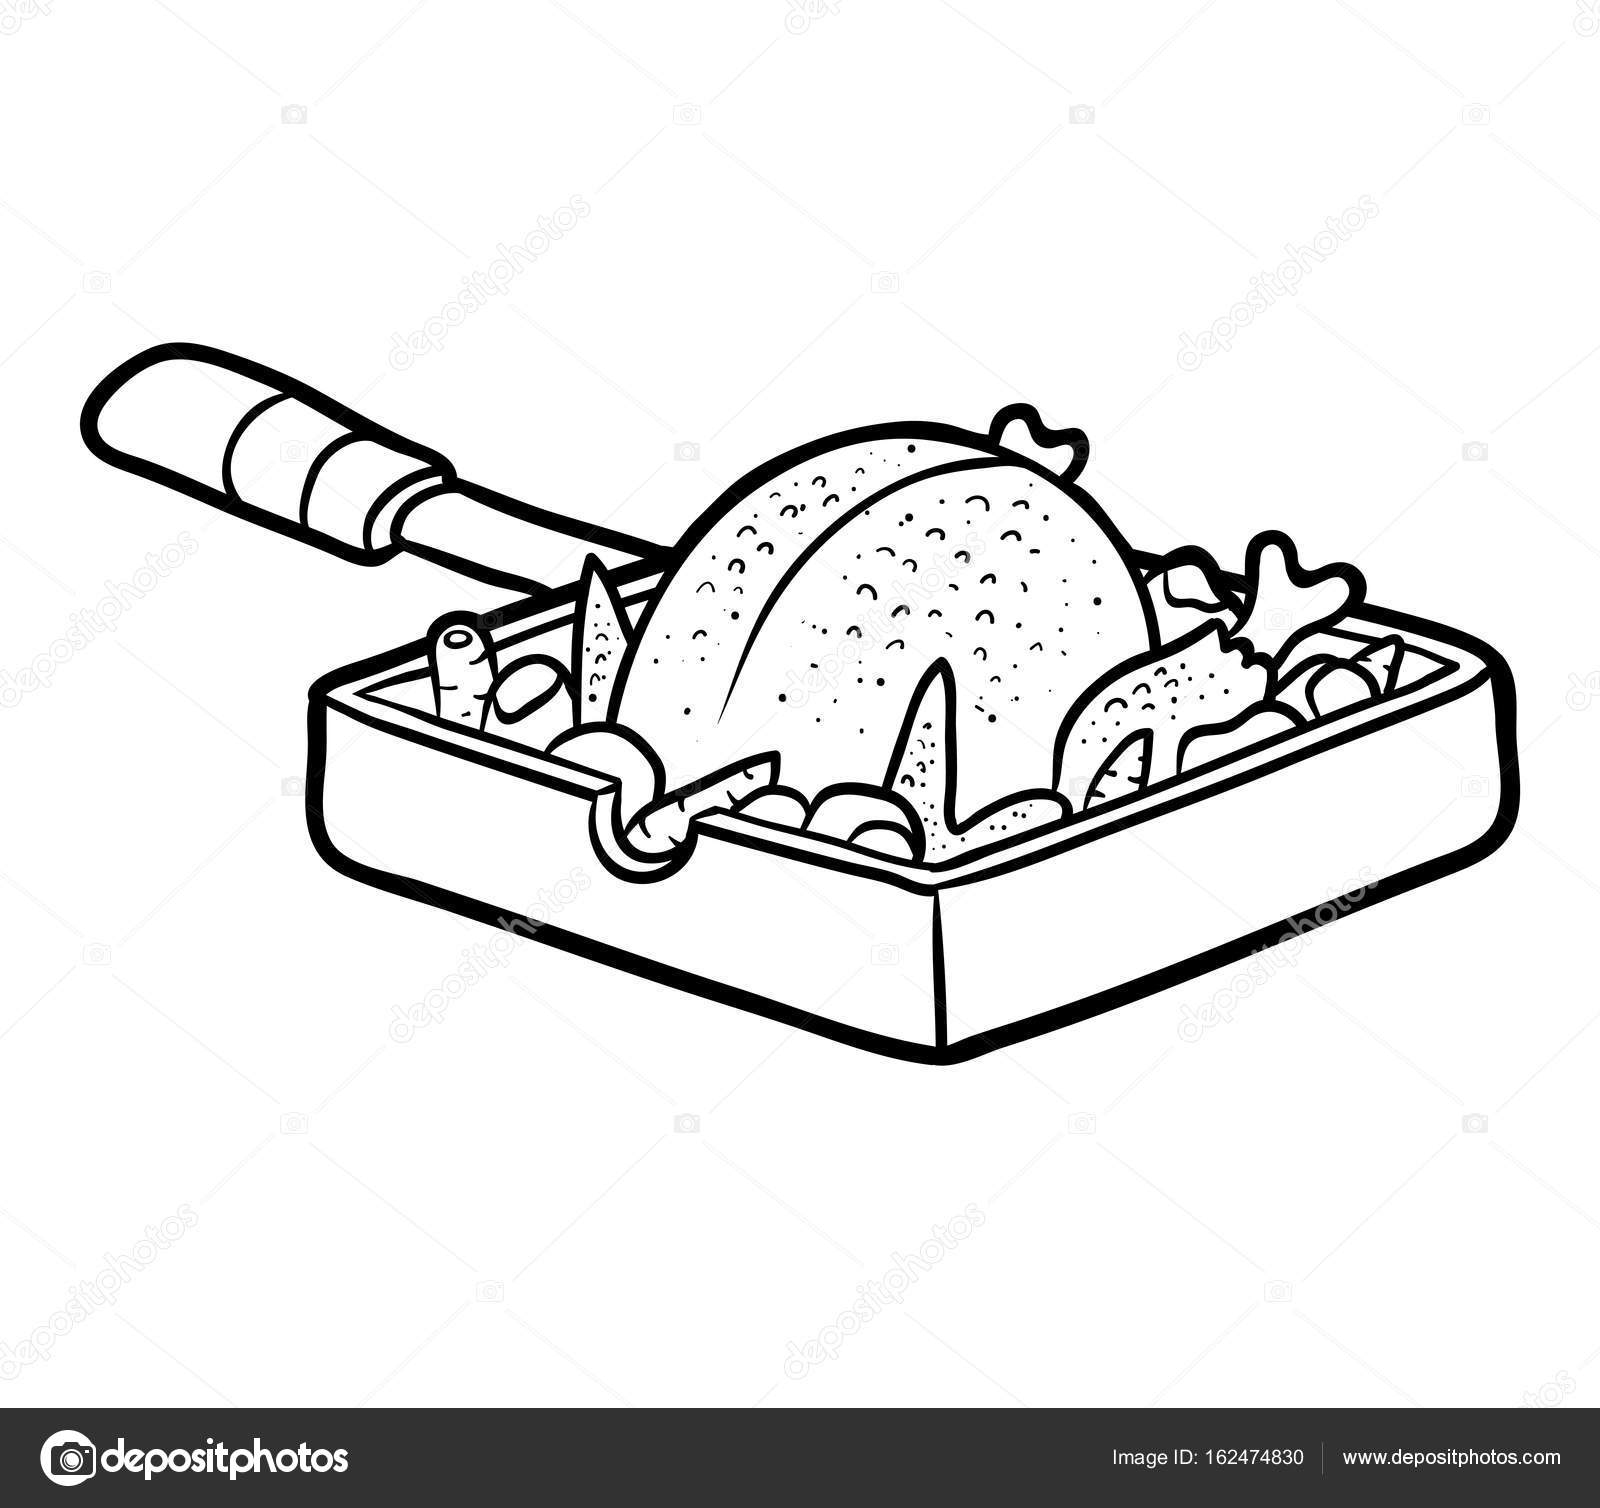 1600x1508 Coloring Book, Roasted Chicken In A Frying Pan Stock Vector